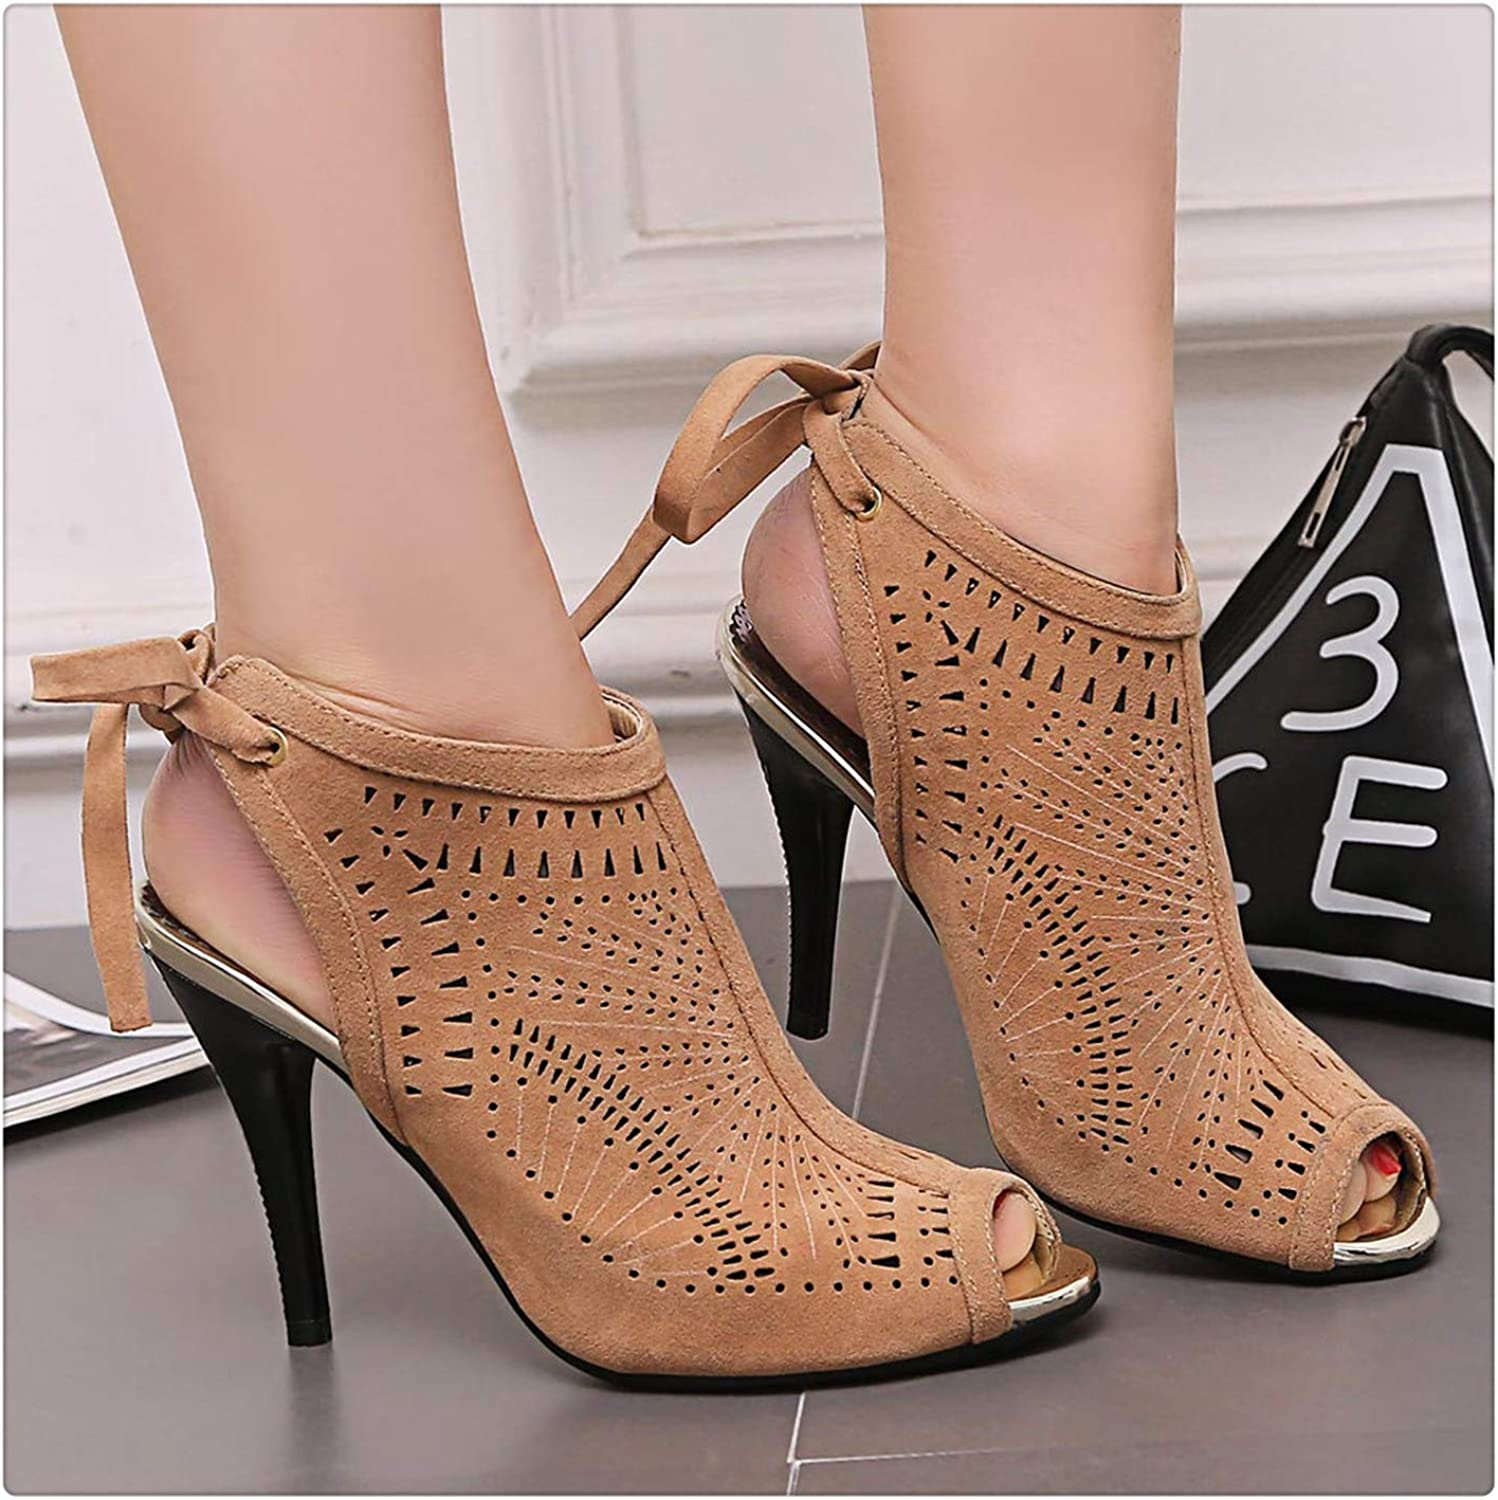 Msanlixian High Thin Heels Sexy Sandals Women Gladiator Cut-Outs Back Strap shoes Summer